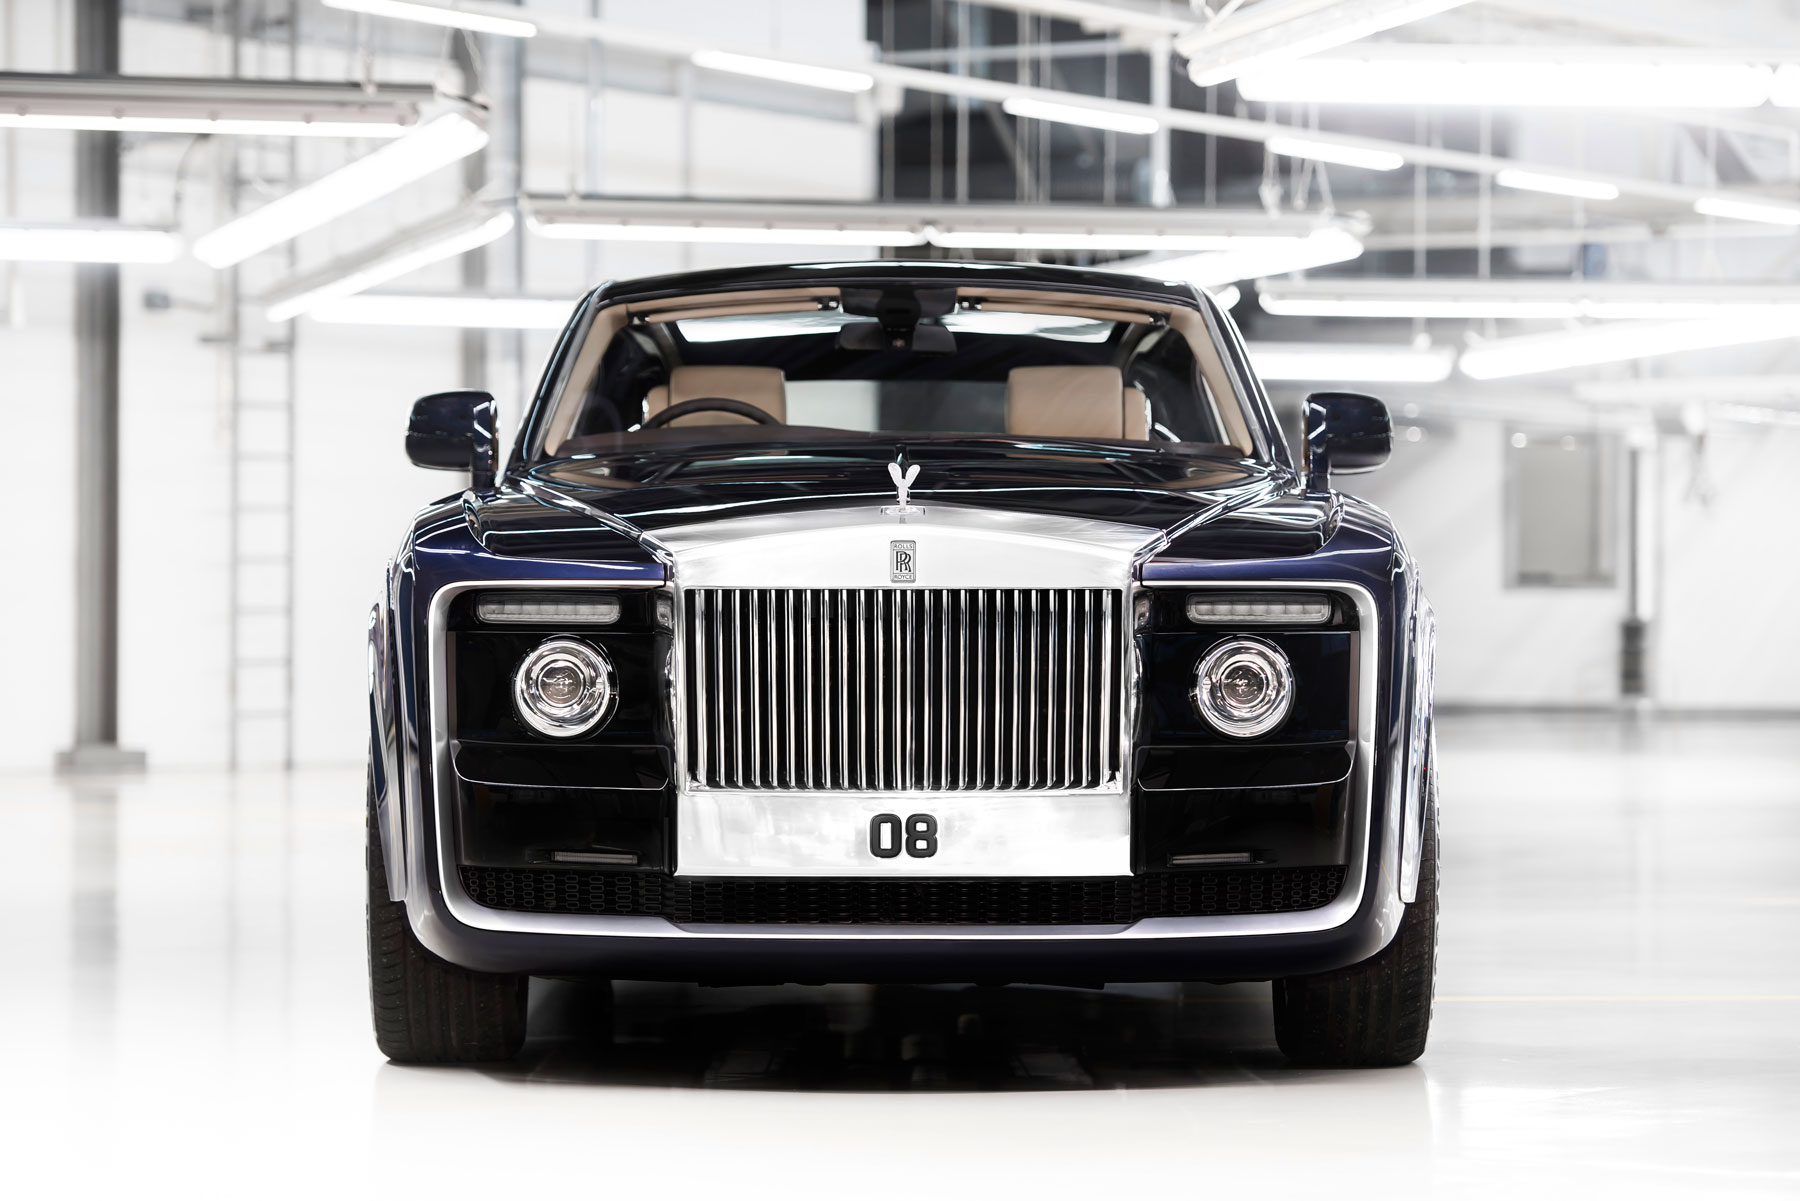 Rolls-Royce 'SWEPTAIL' – A Customer's Coachbuilt Dream Comes True